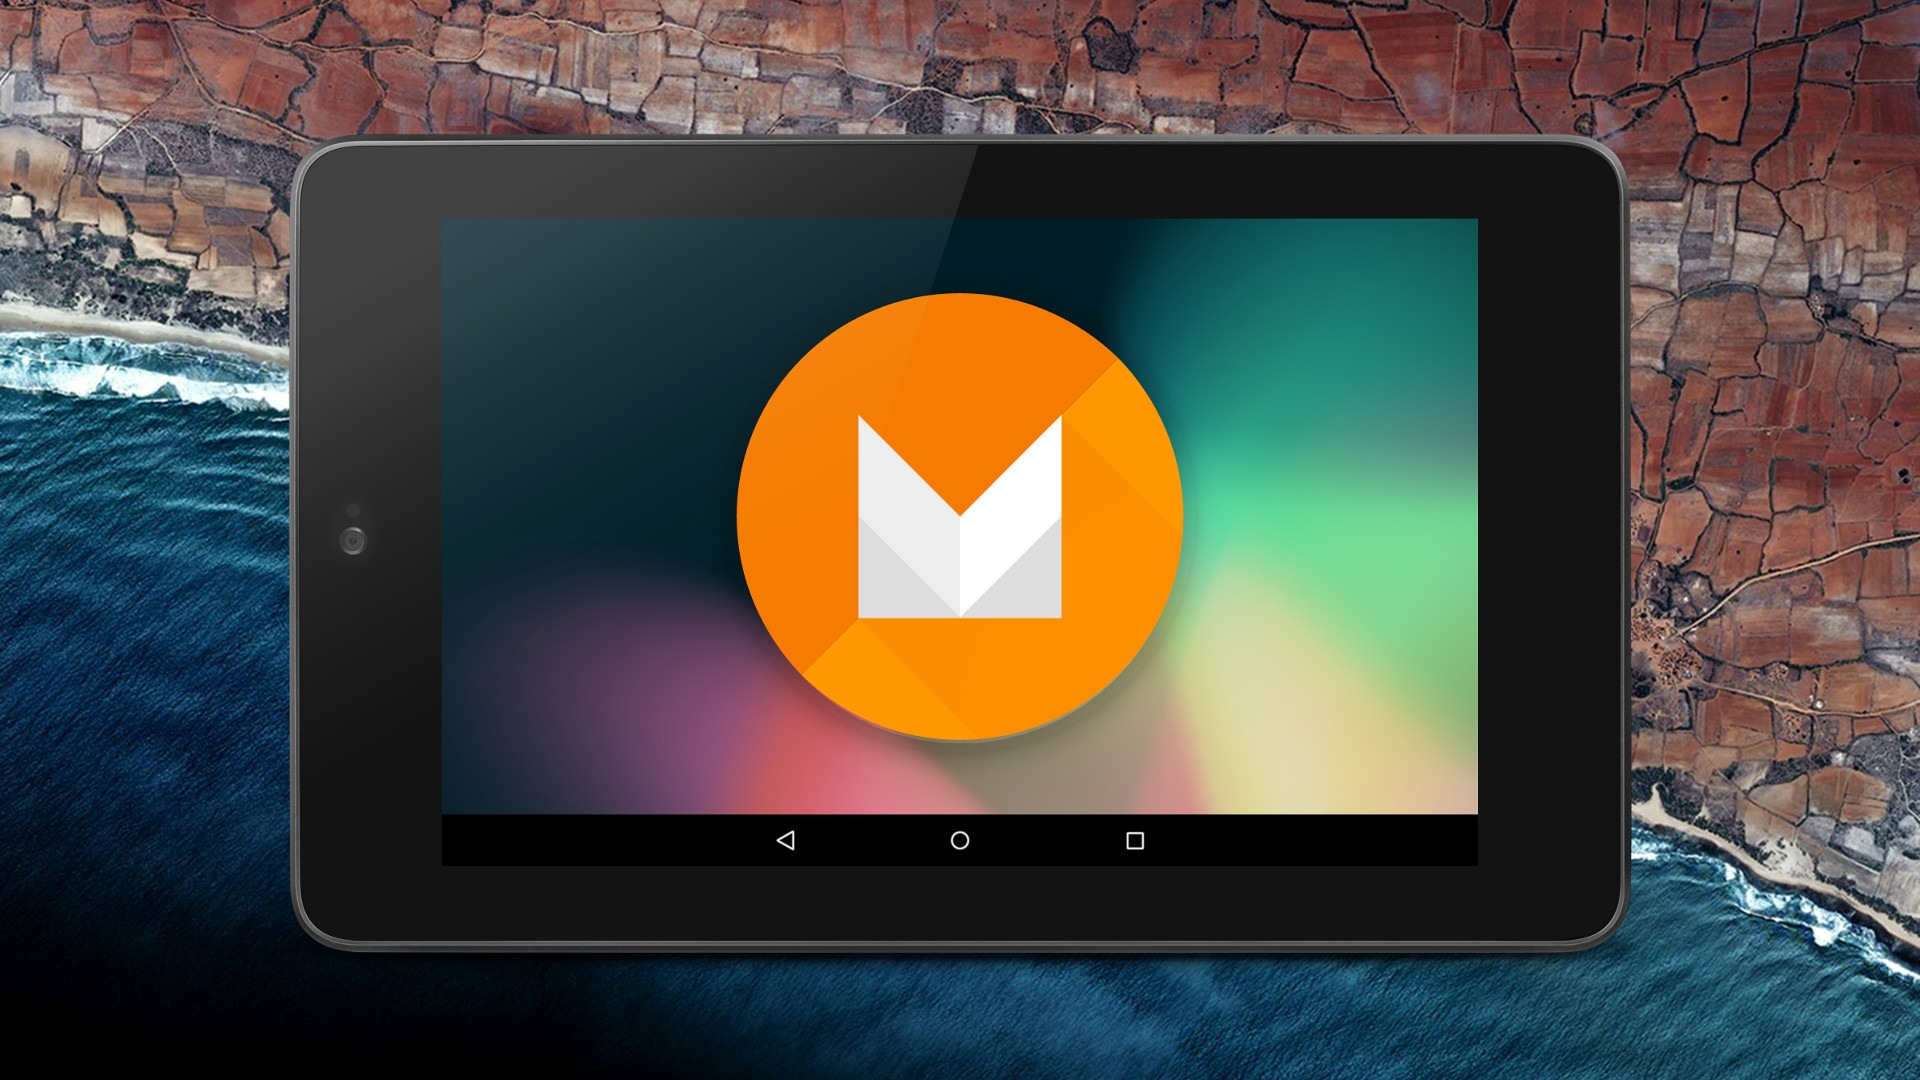 Android M Preview N7 2012 Port